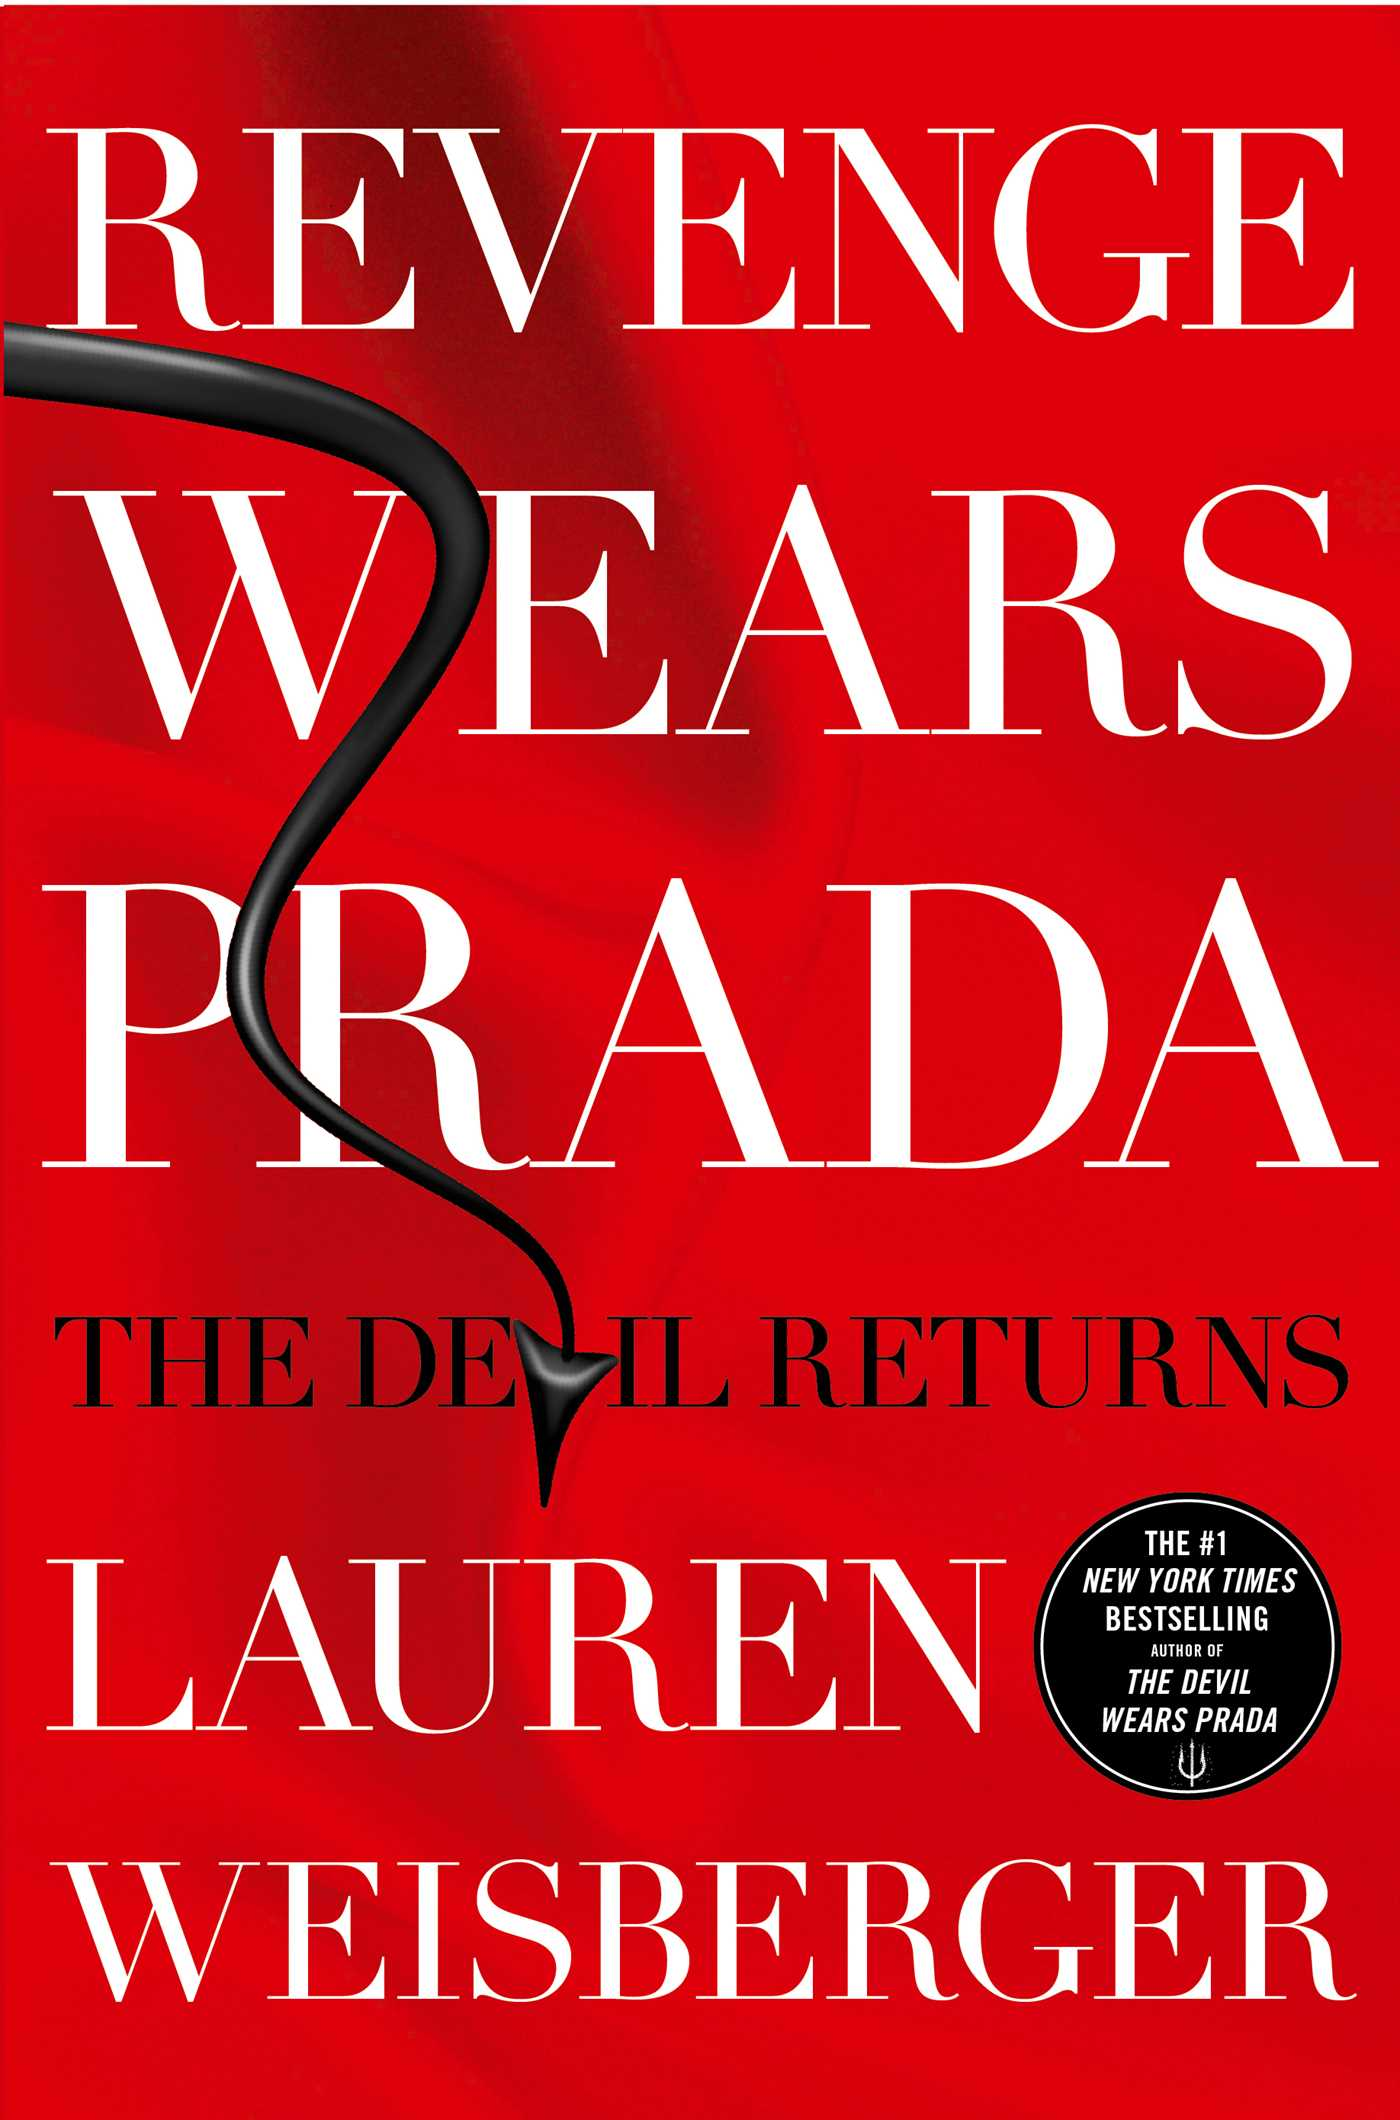 Revenge wears prada special signed edition 9781501100215 hr